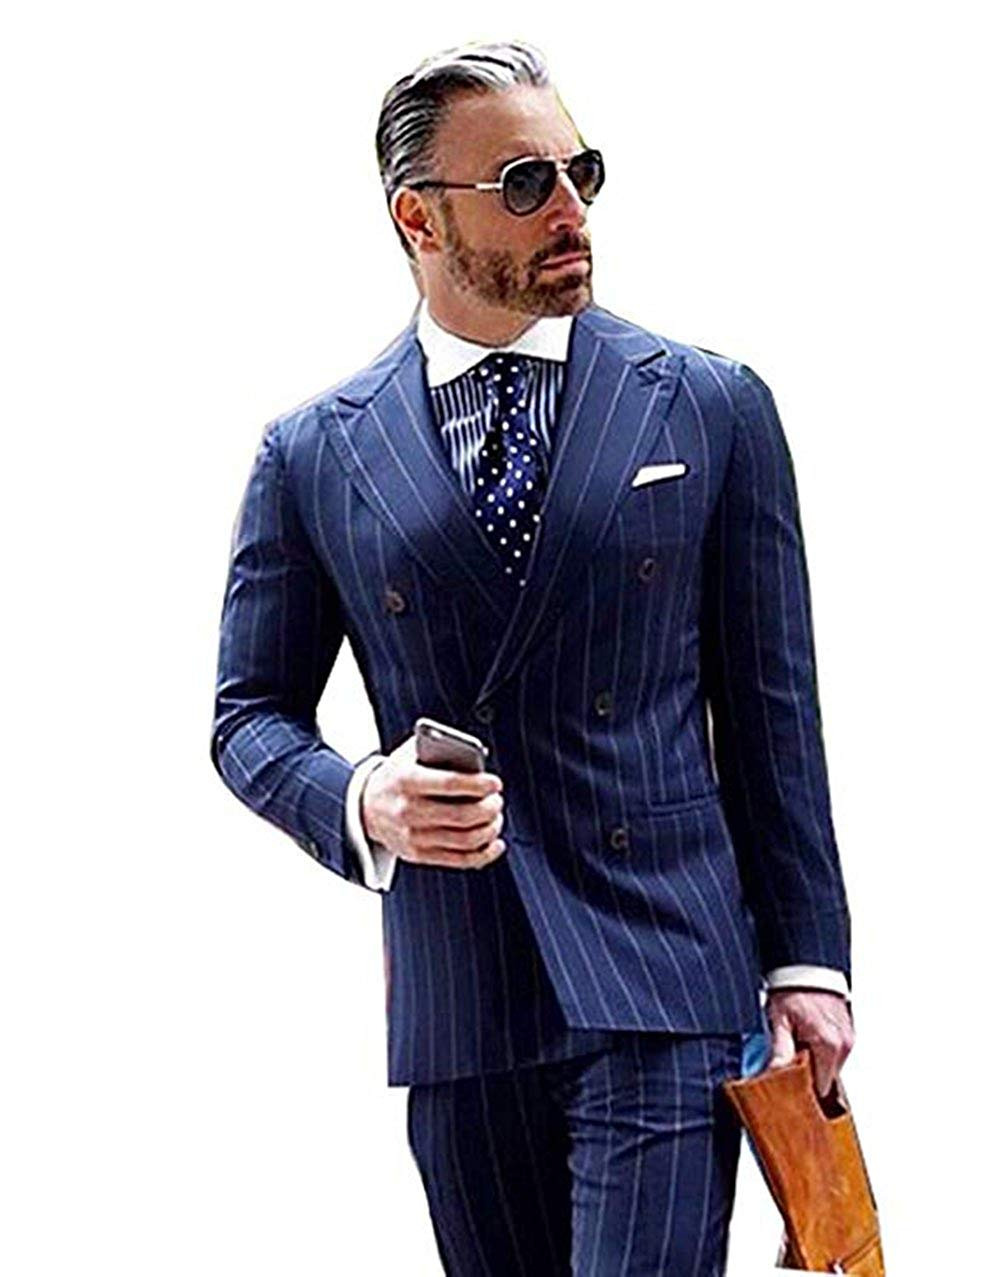 d04f9062a6 Get Quotations · Navy Blue Stripes Men's Suits 2 Piece Suits Double  Breasted Suits Slim Fit Groom Tuxedos Prom